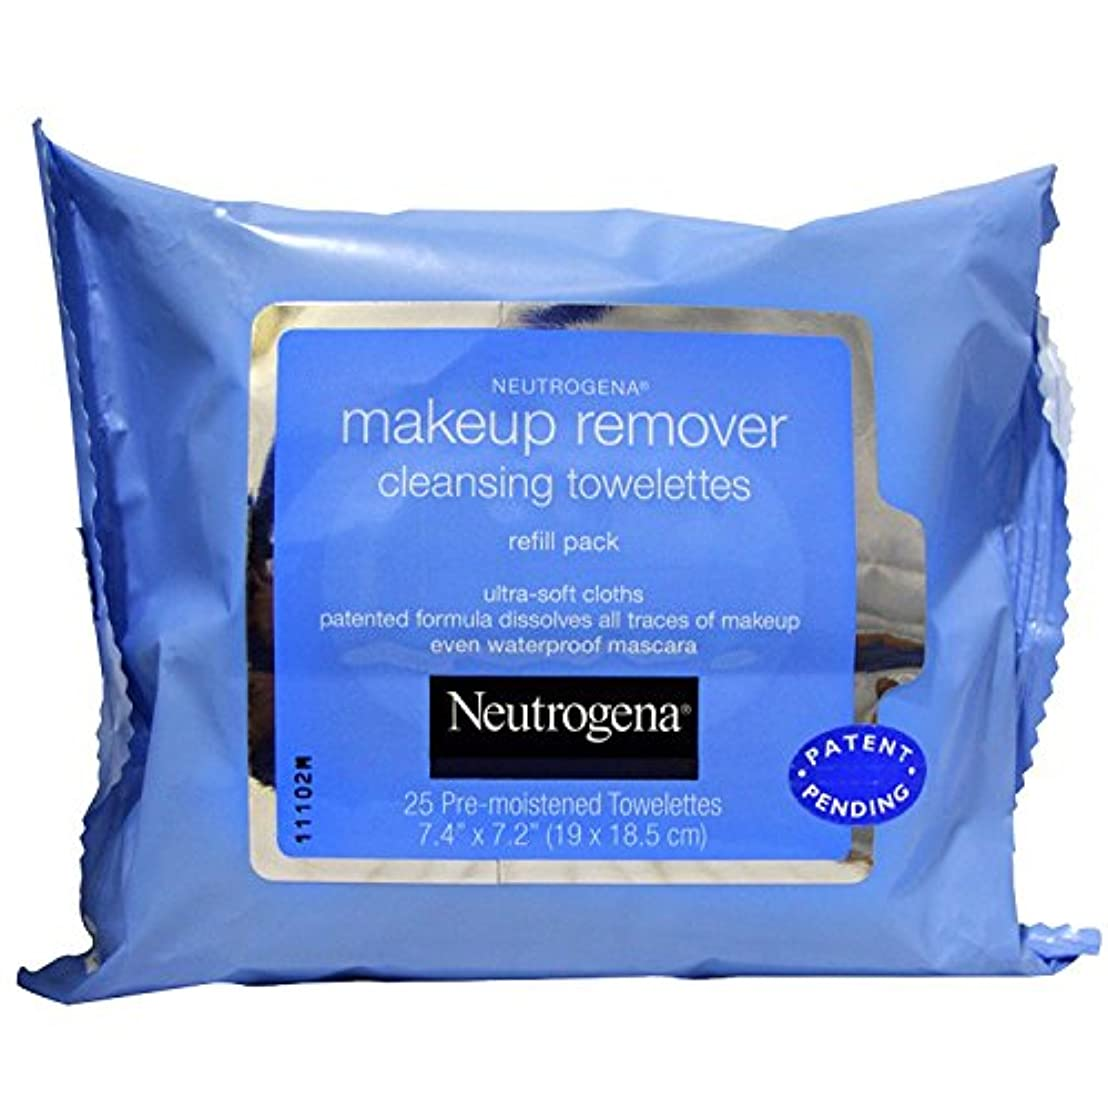 NEUTROGENA Makeup Remover Cleansing Towelettes Refill Pack - 25 Count - 25 Towelettes